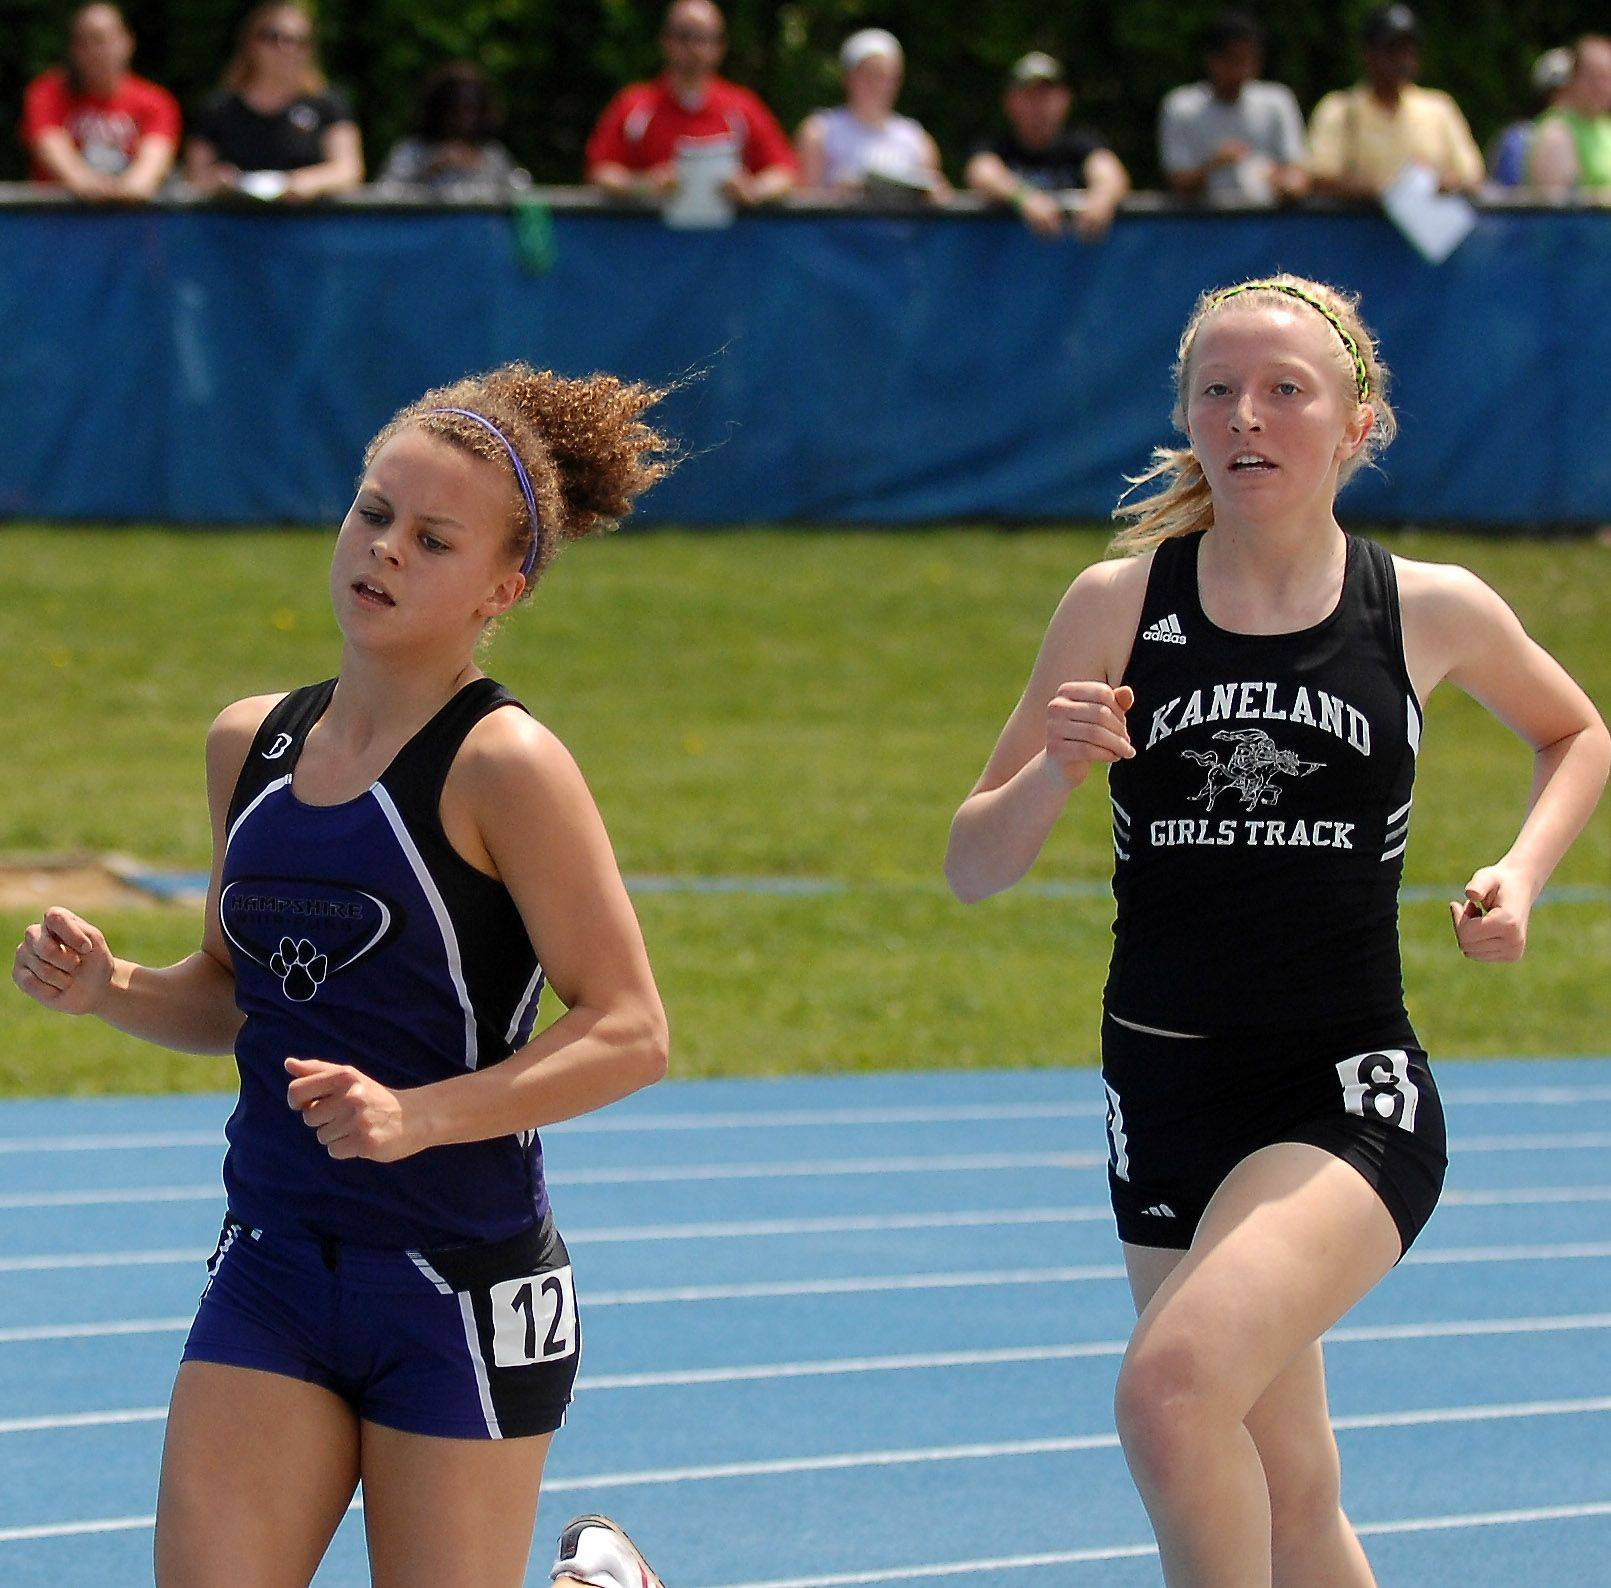 Hampshire's Cassie Kruse and Kaneland's Andie Strang run the 1600 during the preliminaries of the IHSA girls state track finals.